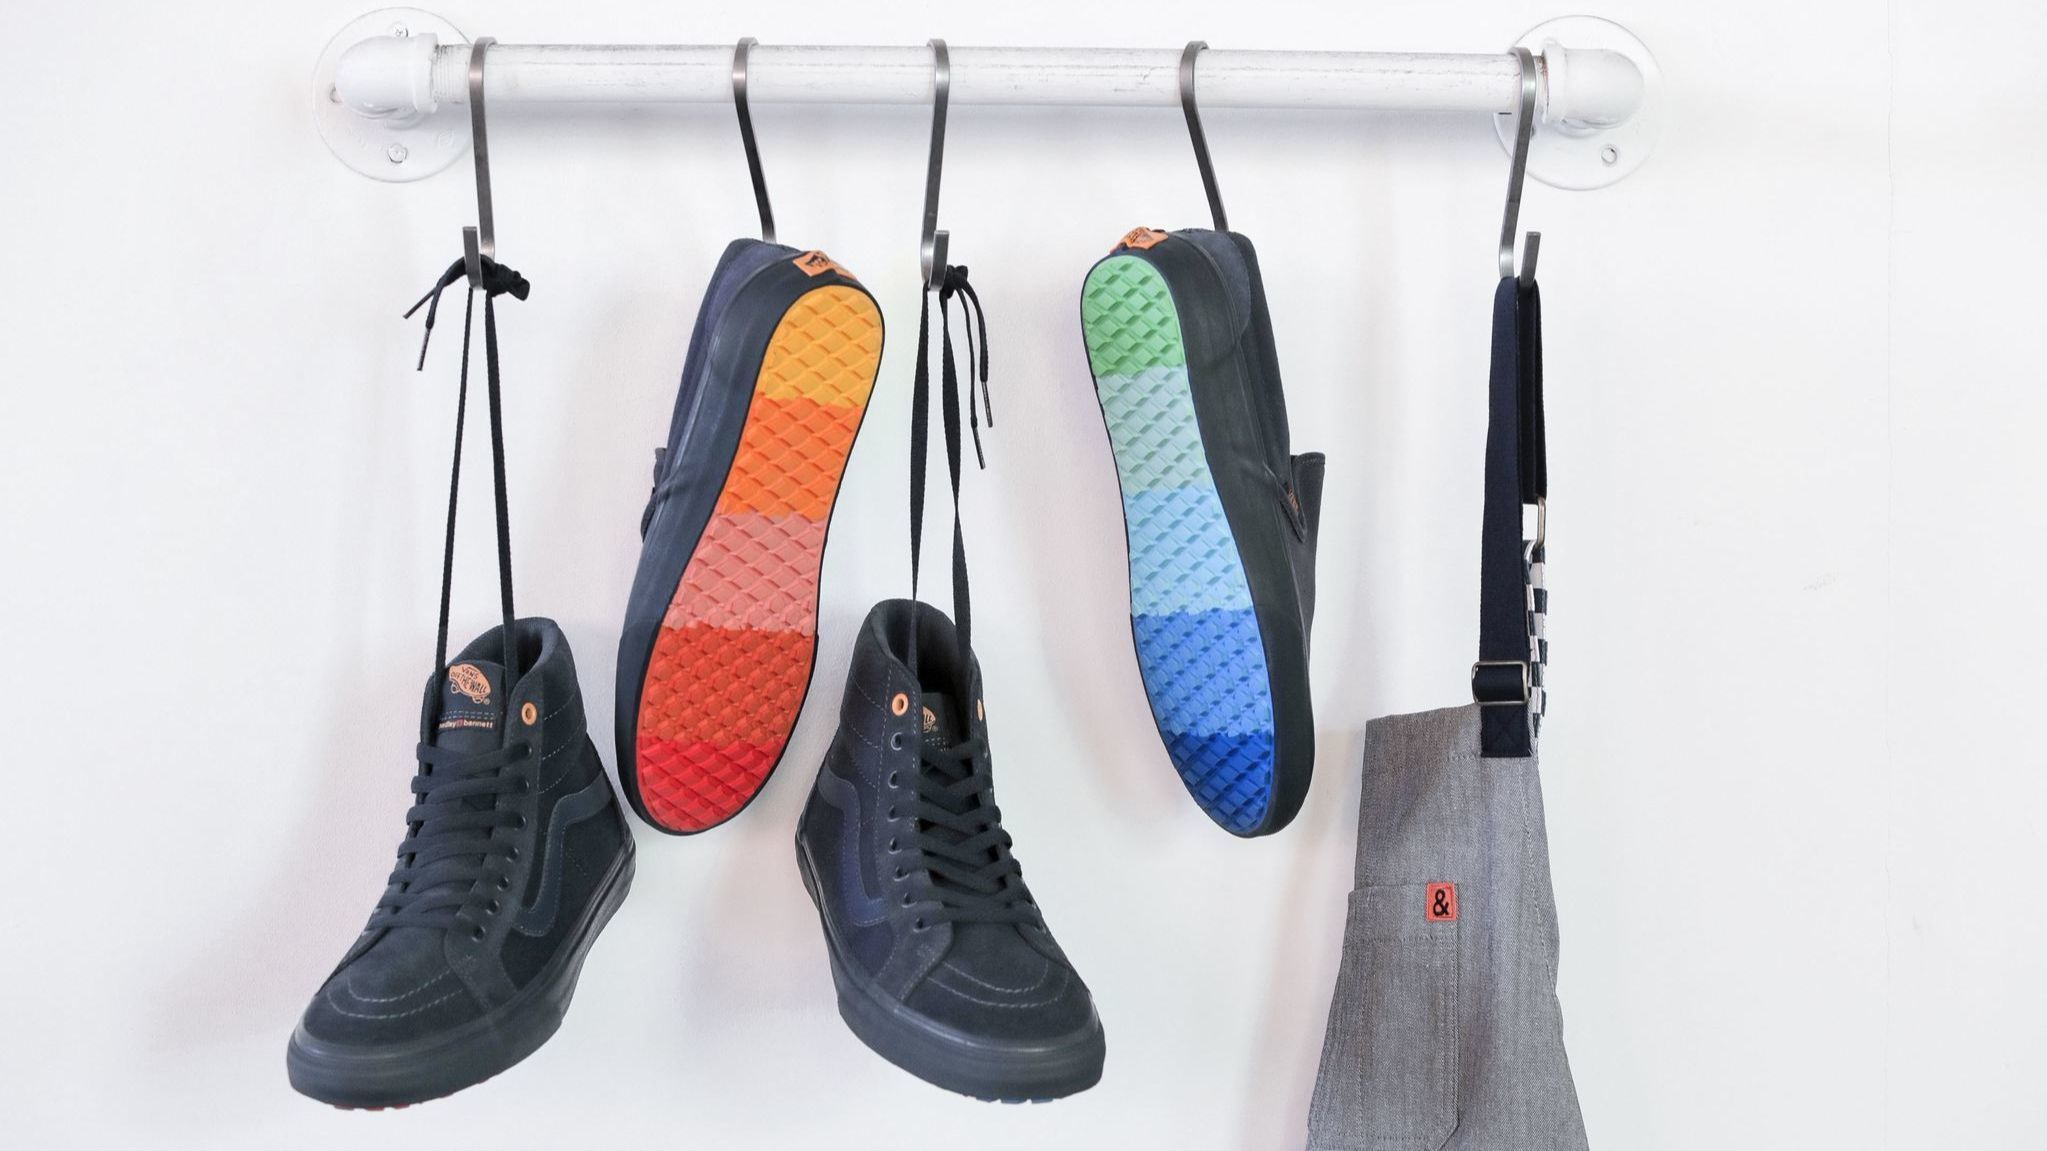 Vans and local chefwear label Hedley &Bennett cook up a rainbow-soled collaboration